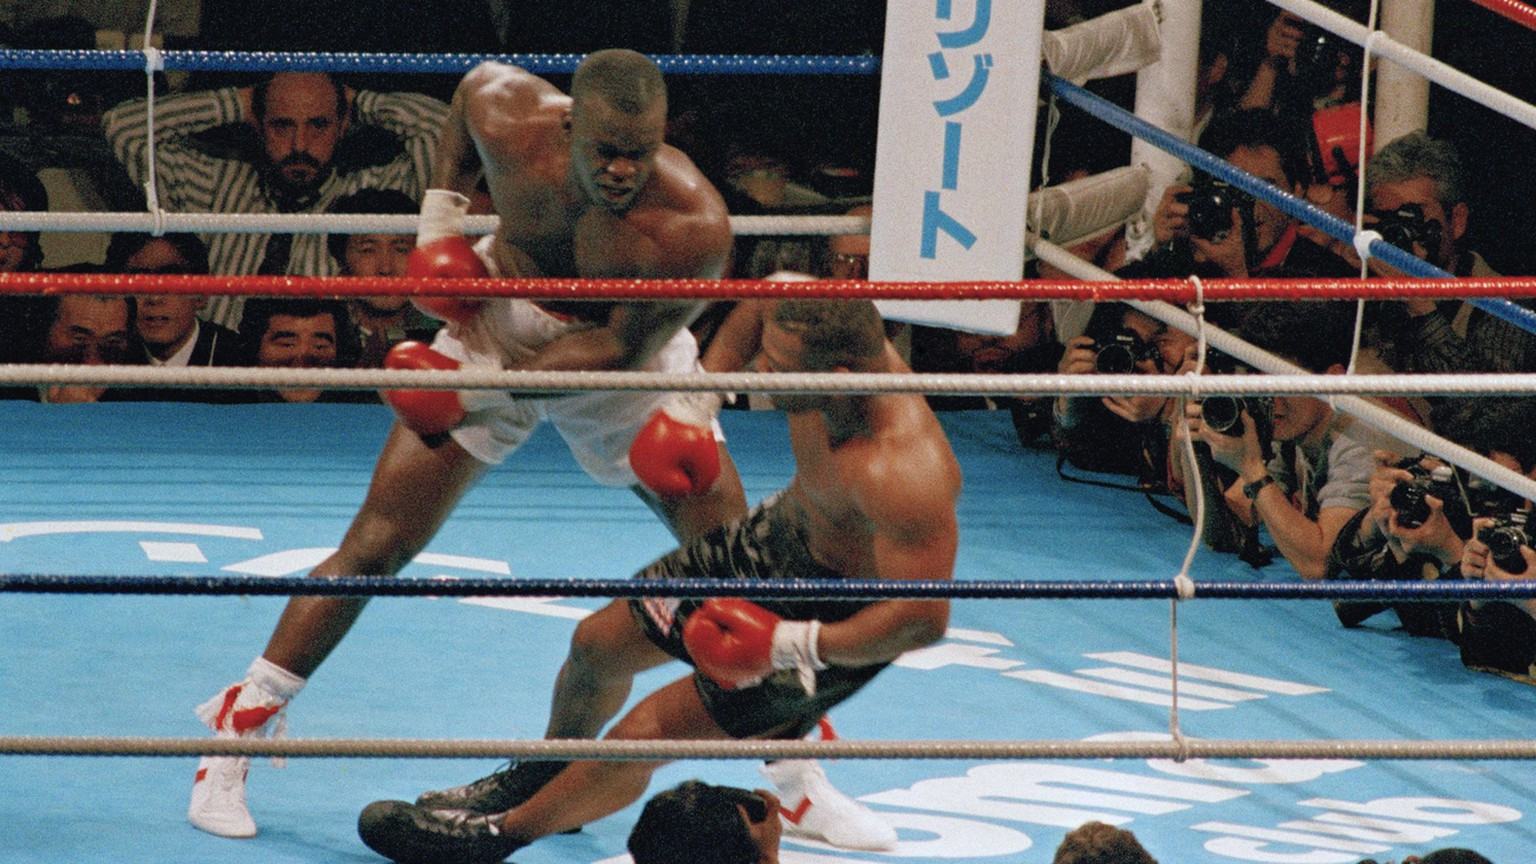 FILE - In this Feb. 11, 1990, file photo, James Douglas follows with a left, dropping Mike Tyson to the canvas in the 10th round of scheduled 12-round heavyweight champion bout at the Tokyo Dome in Tokyo. Tyson, the youngest heavyweight champion in boxing history, comes into the bout 37-0 with 33 knockouts, while the unknown Douglas is 29-4-1 with 19 KOs. (AP Photo/Tsugufumi Matsumoto, File)